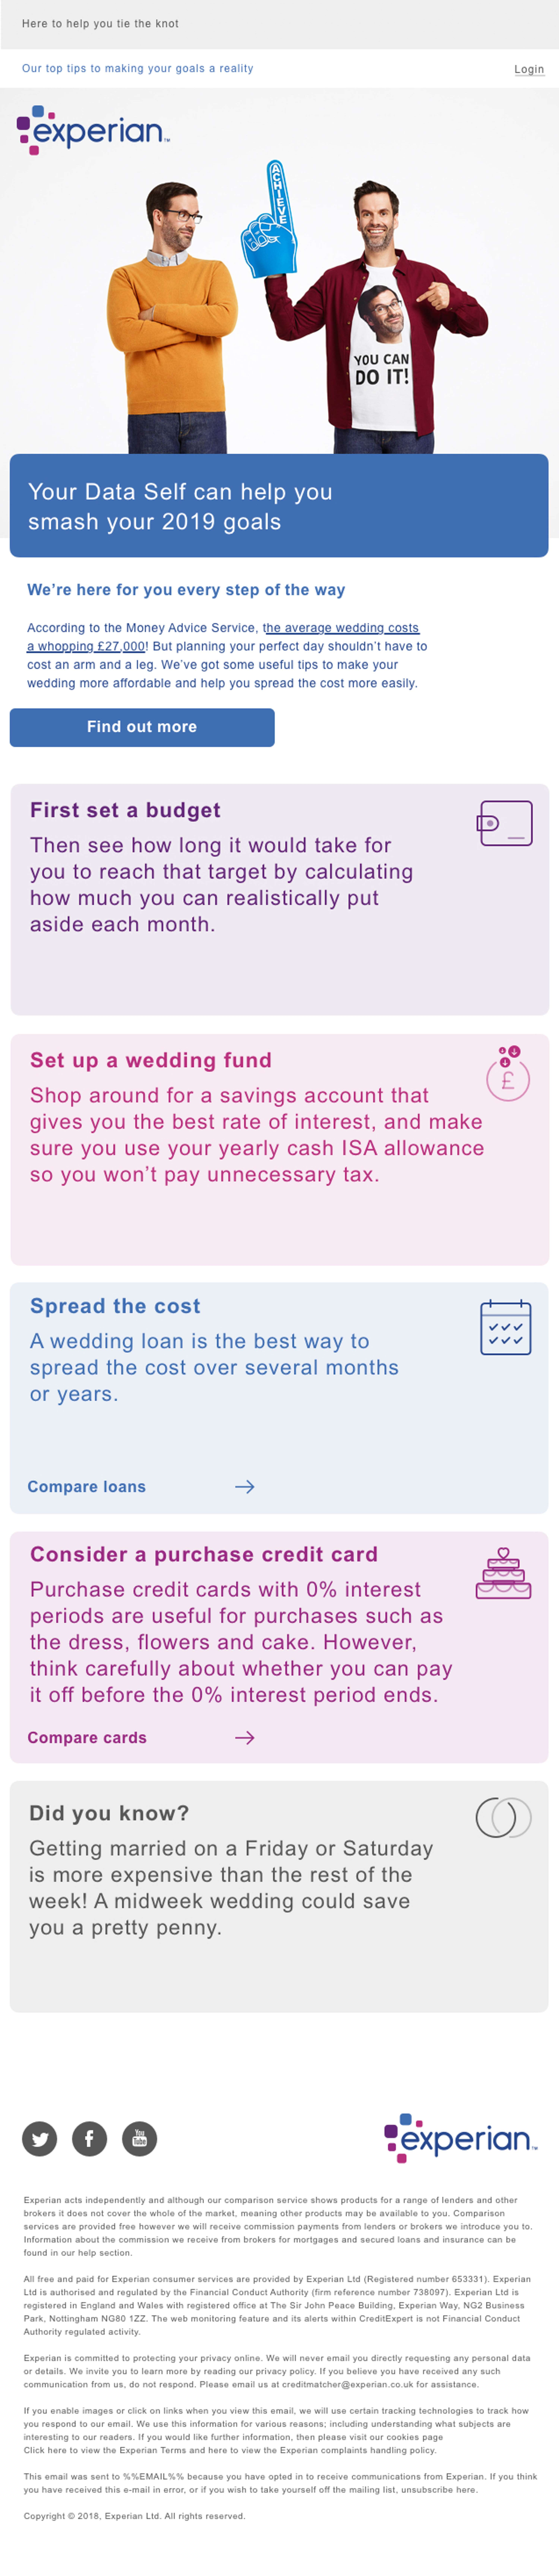 Experian Christmas New Year Email Campaign The Dots